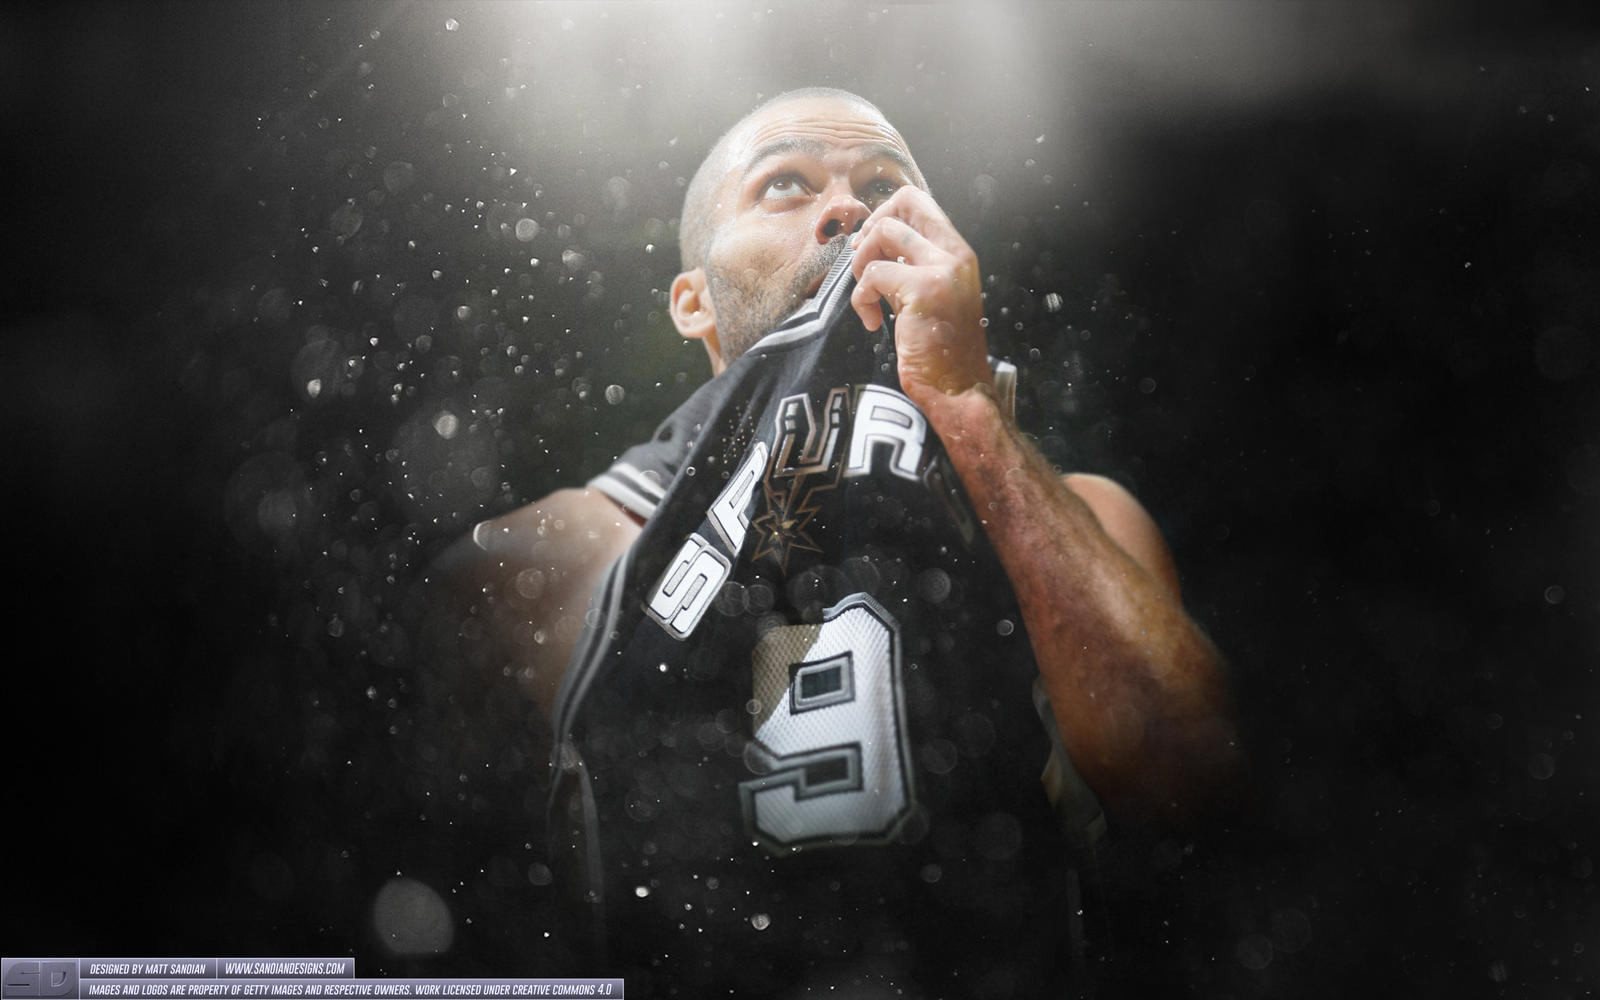 Tony parker by sanoinoi on deviantart tony parker by sanoinoi tony parker by sanoinoi voltagebd Choice Image